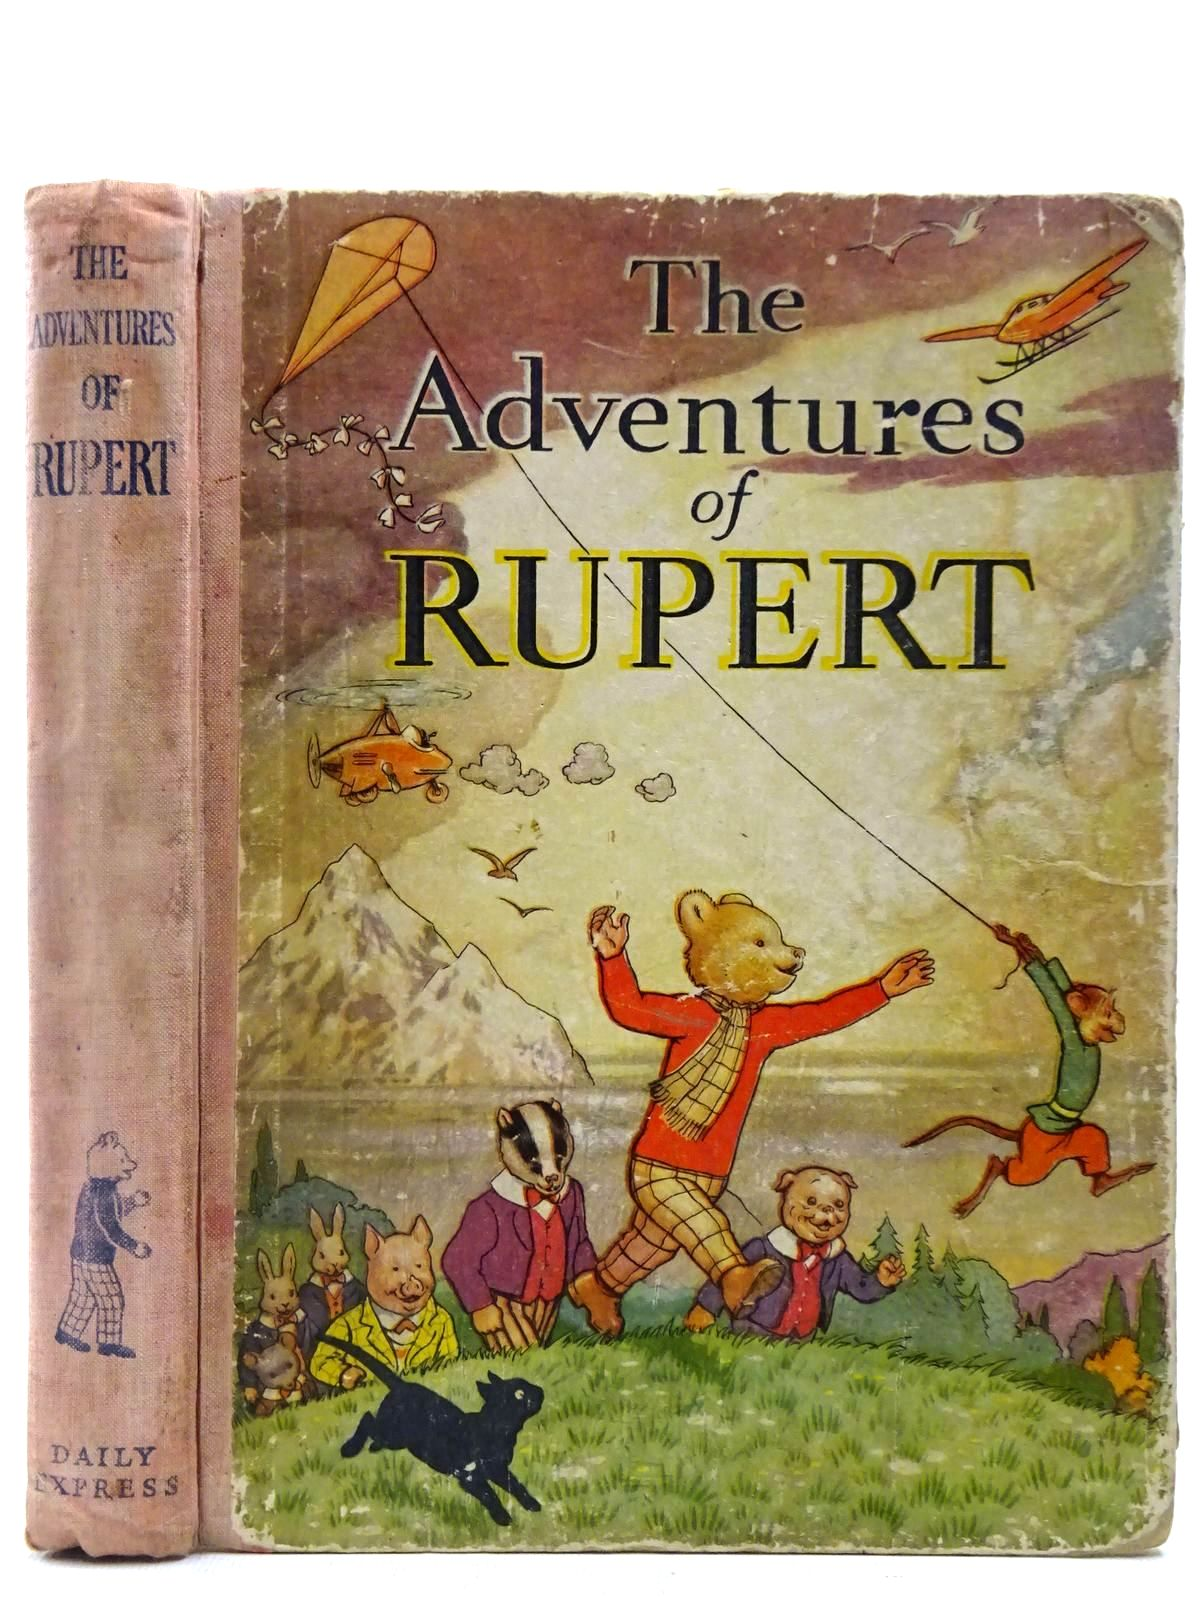 Photo of RUPERT ANNUAL 1939 - THE ADVENTURES OF RUPERT written by Bestall, Alfred illustrated by Bestall, Alfred published by Daily Express (STOCK CODE: 2127422)  for sale by Stella & Rose's Books